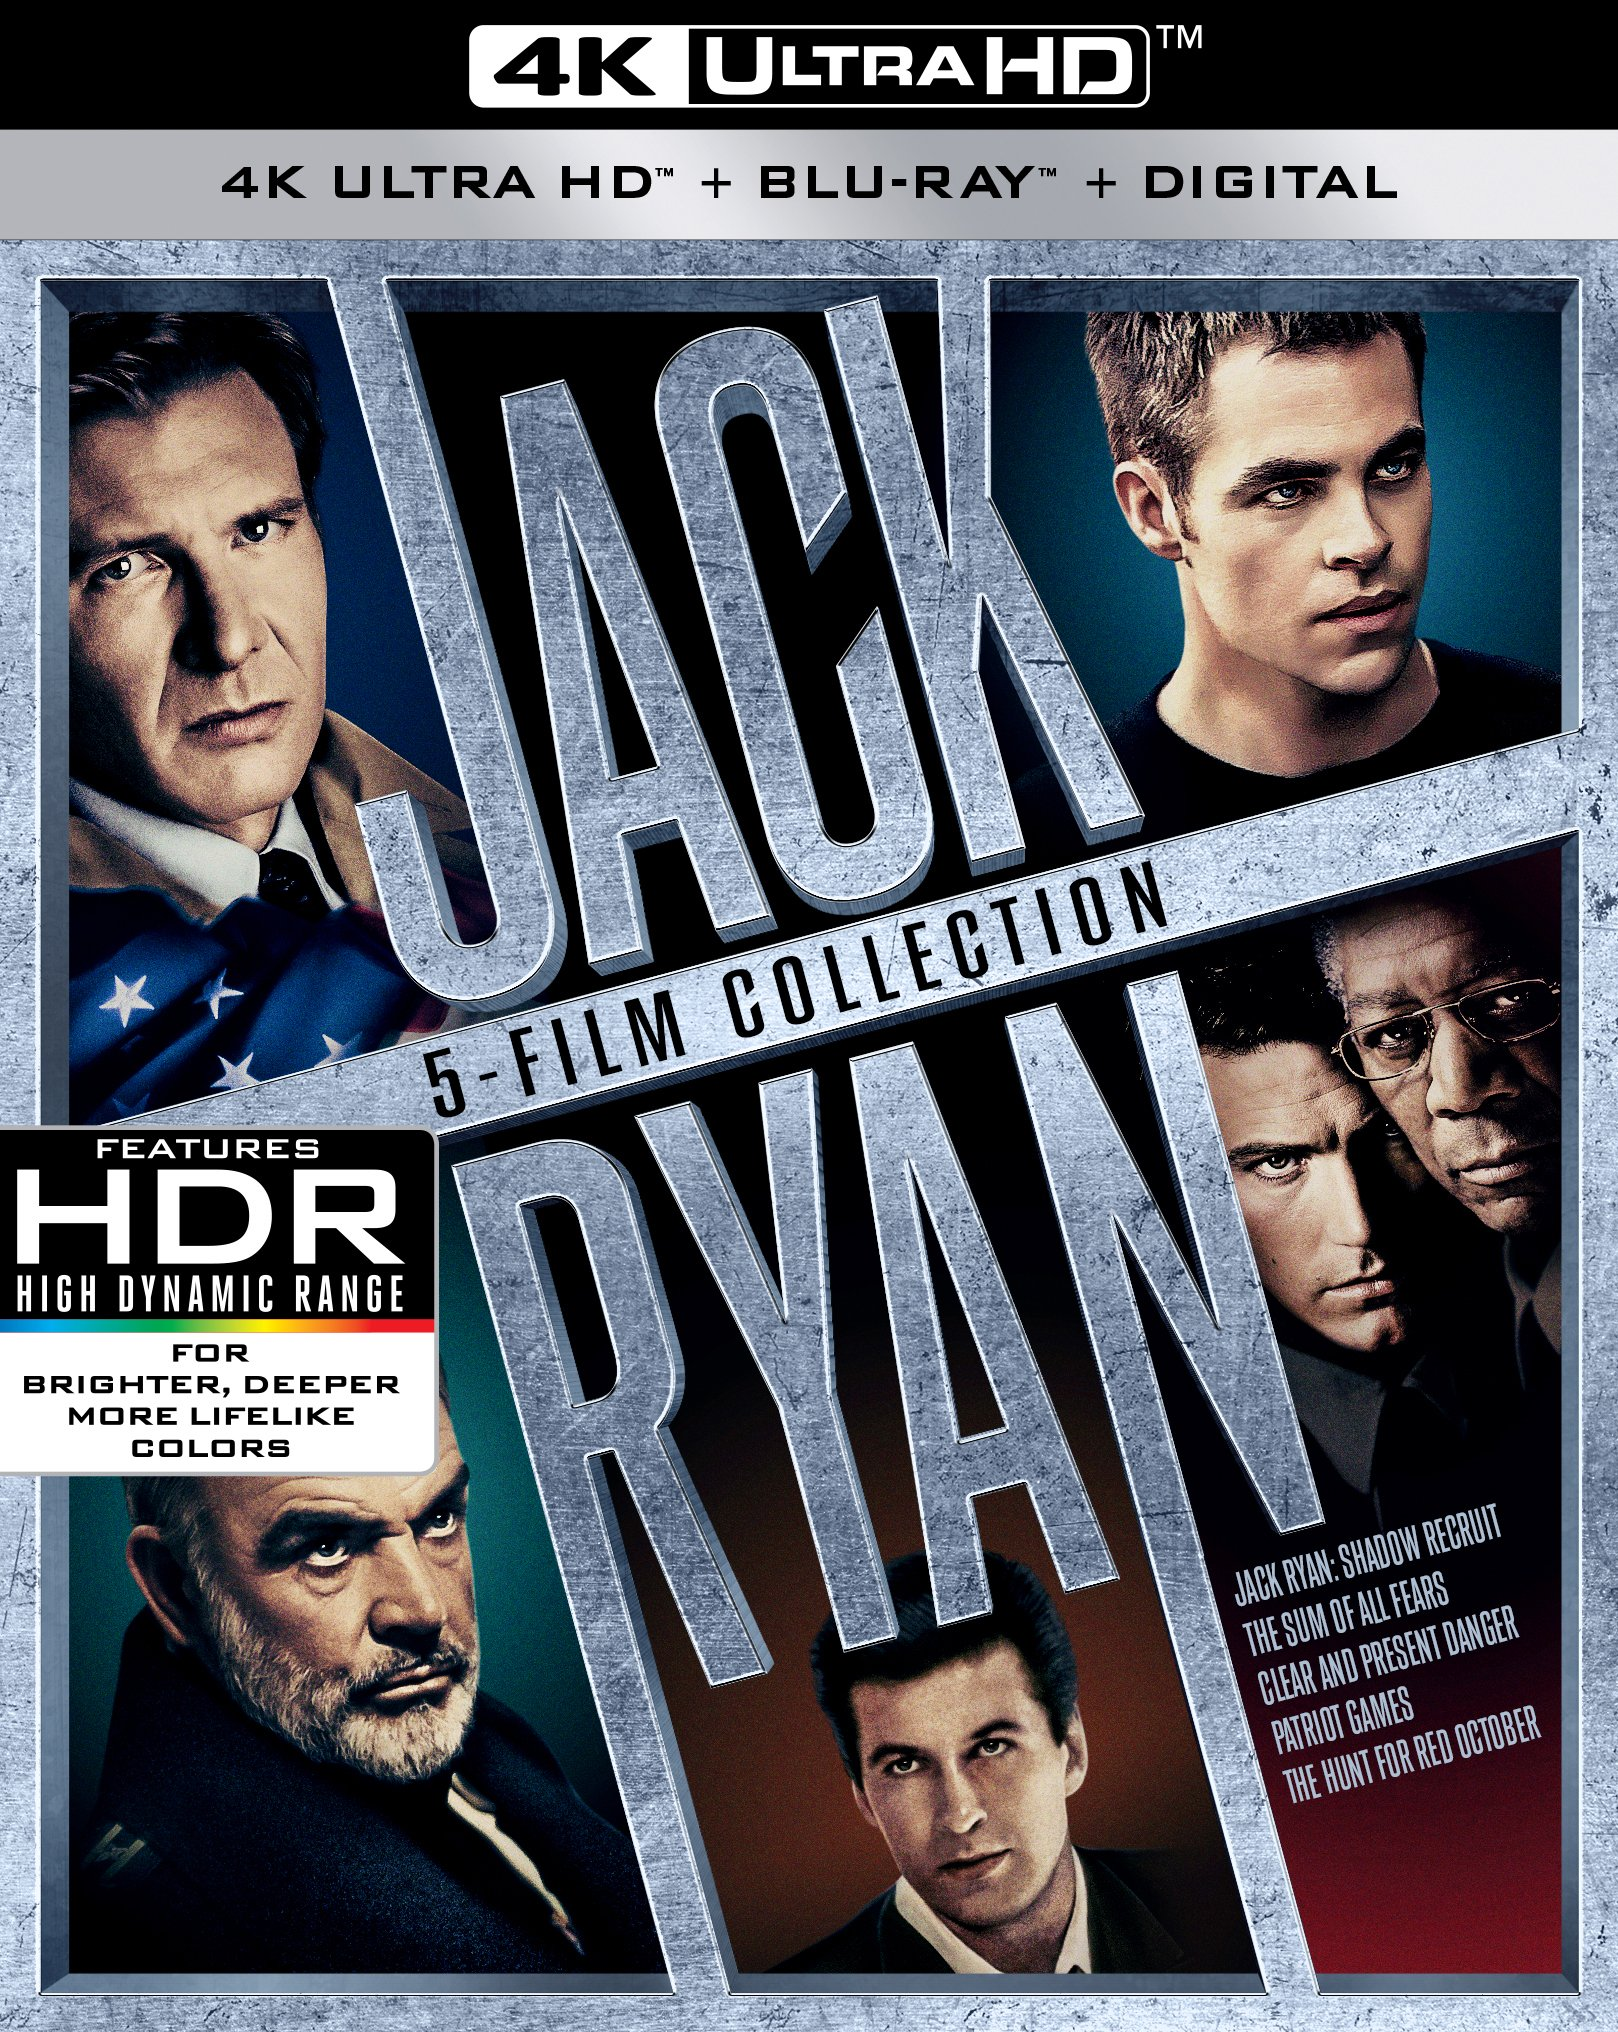 4K Blu-ray : Jack Ryan: 5-movie Collection (With Blu-ray, Boxed Set, 4K Mastering, Digitally Mastered in HD, O-Card Packaging)